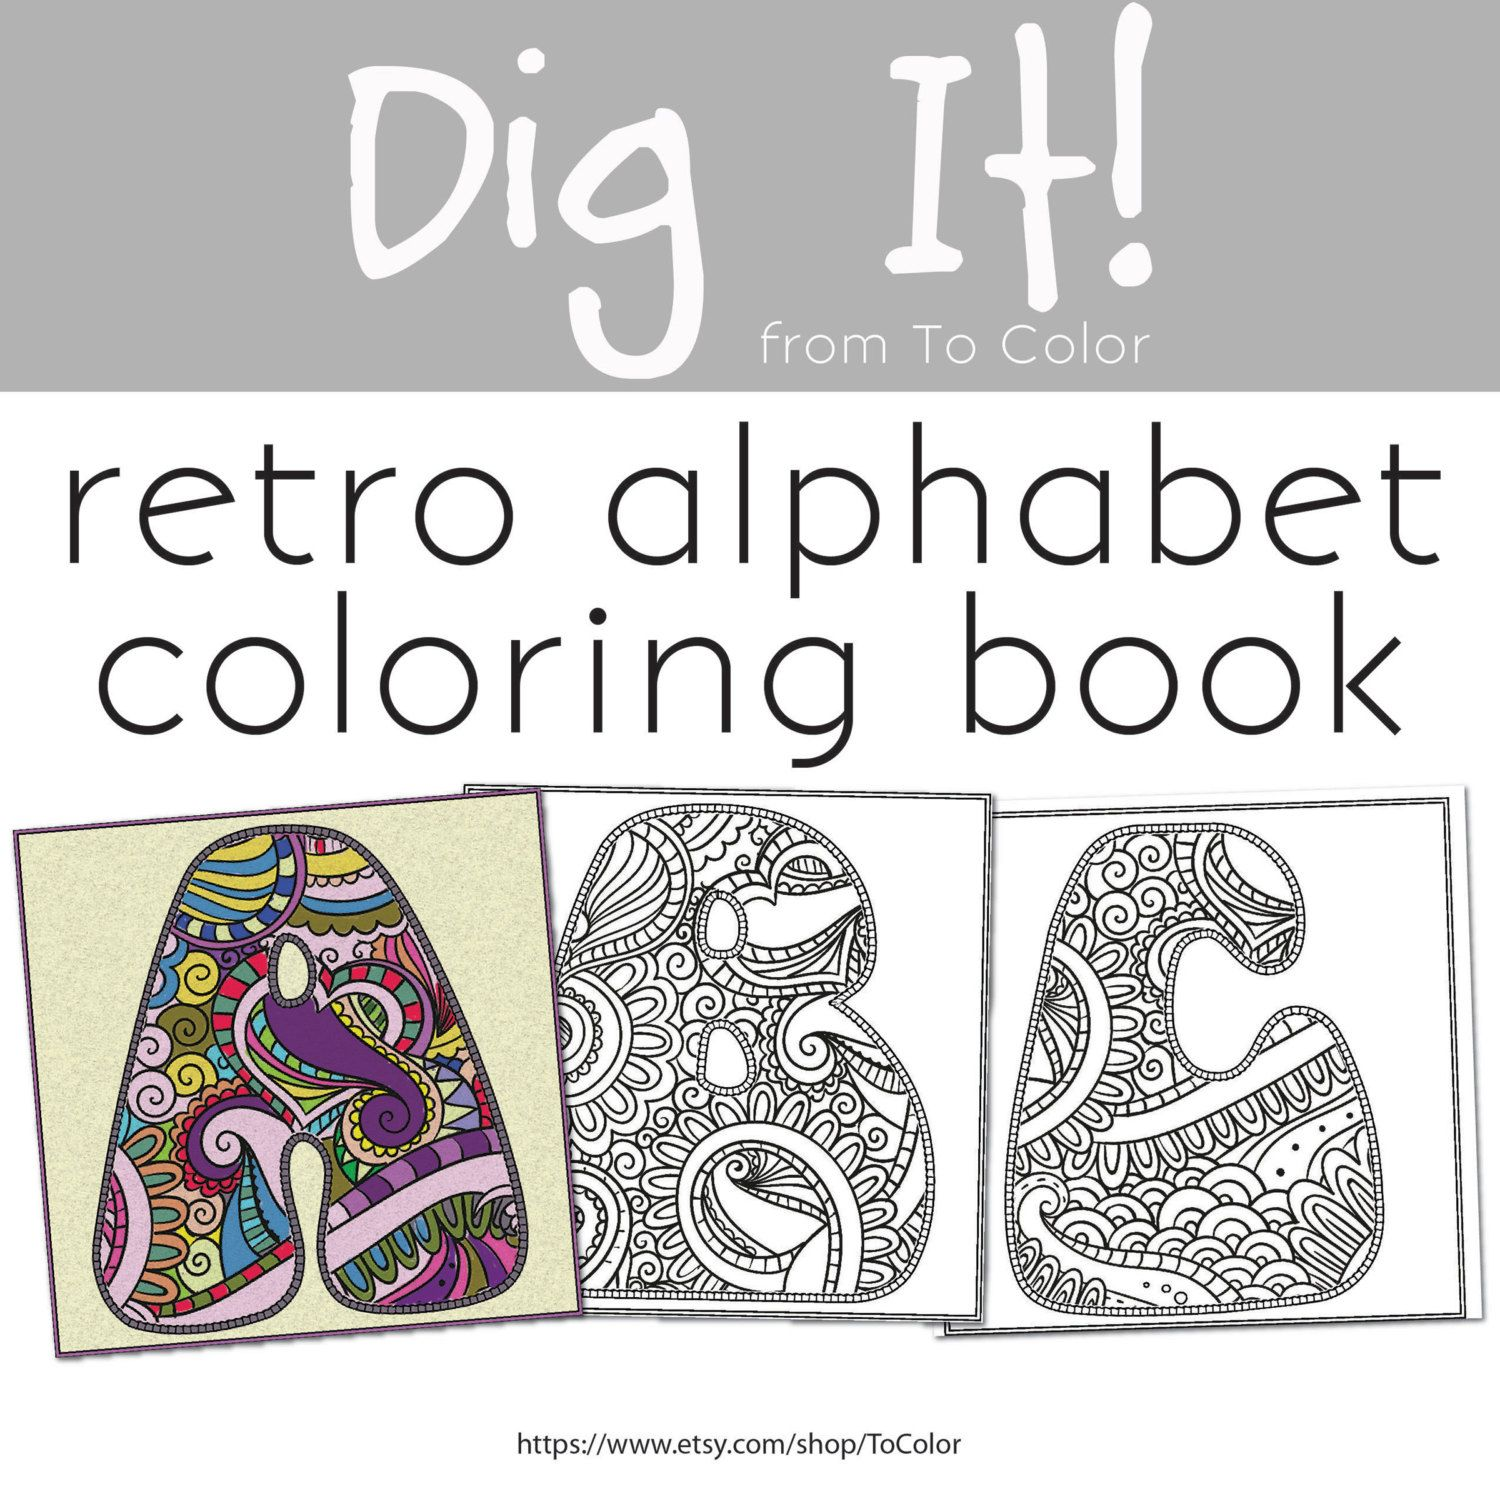 The coloring book e book - 70s Retro Alphabet Coloring Pdf Ebook 26 Coloring Pages Instant Download Coloring Book Coloring Page Grown Ups Digital Stamp